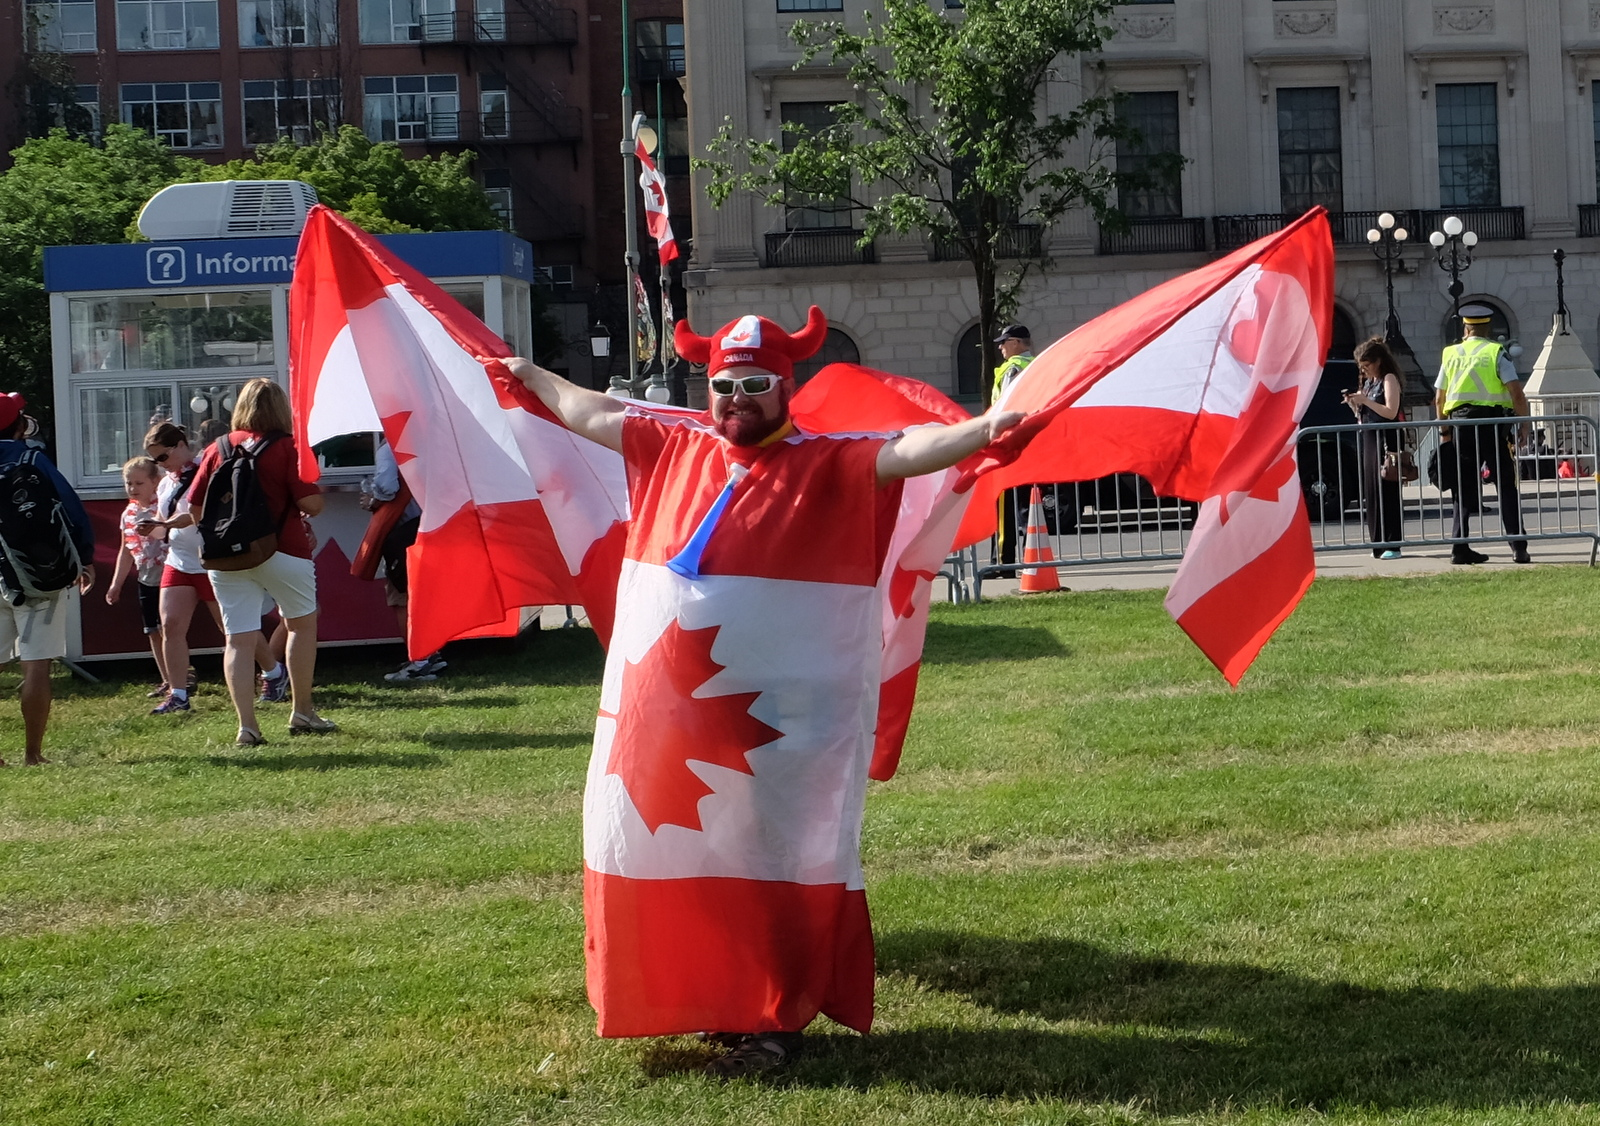 Canada Day brings out the patriot in many of us. Some more than others, of course. - JIM BYERS PHOTO